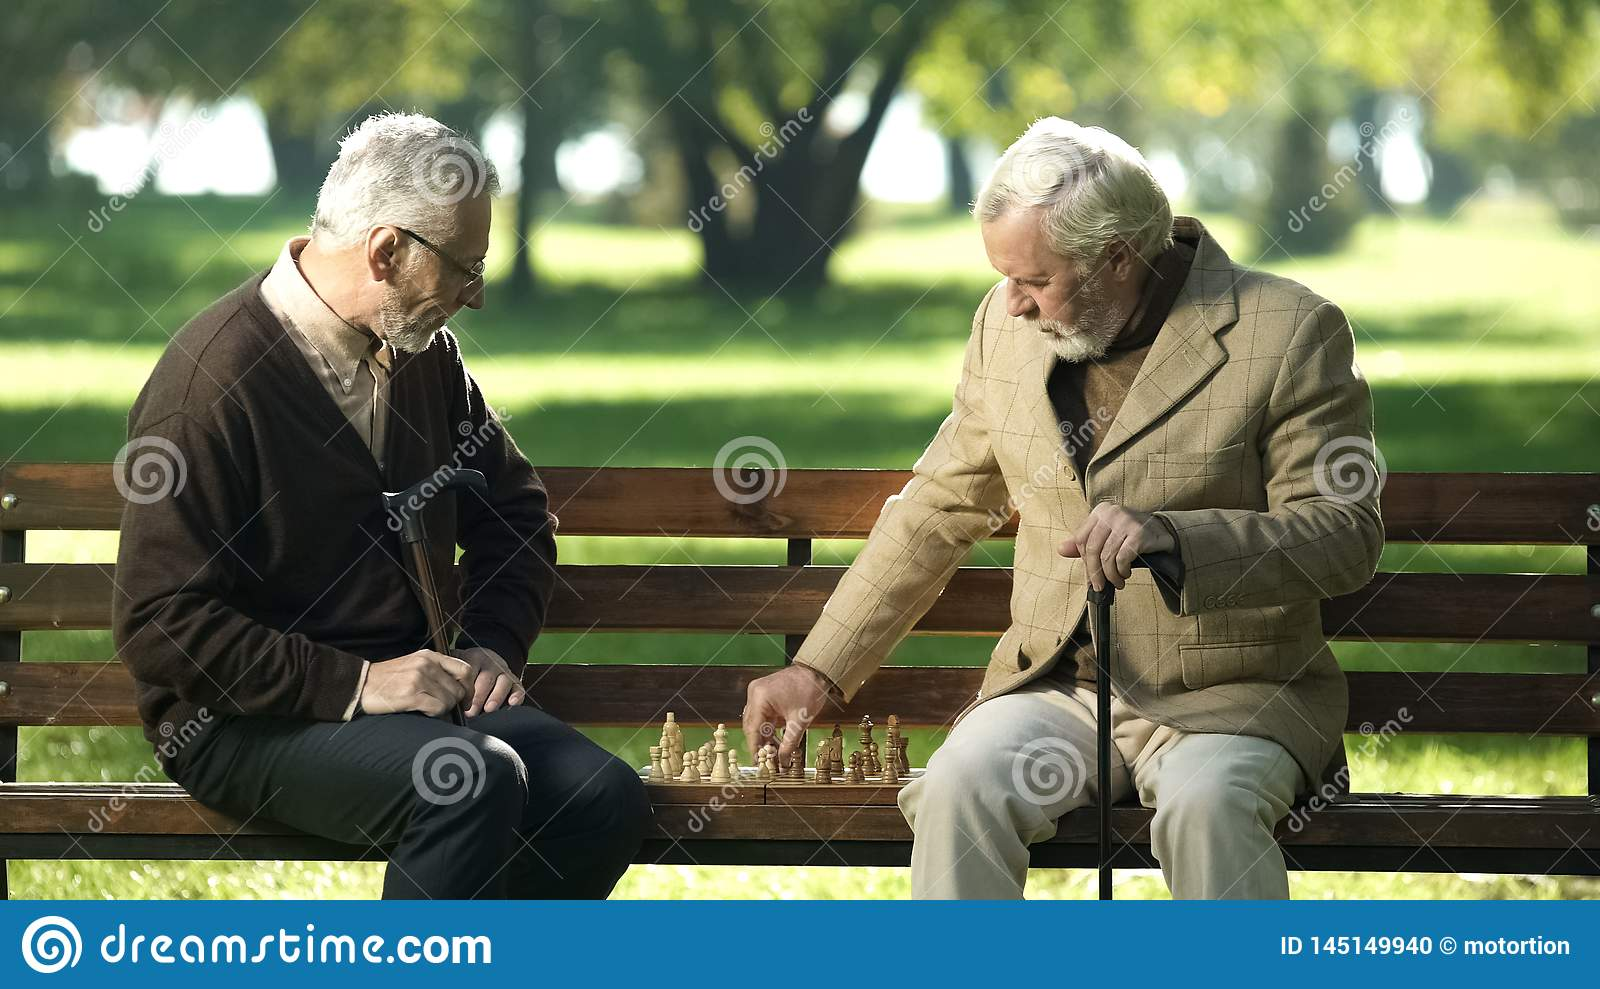 Old friends sitting on bench in park and playing chess, happy leisure time